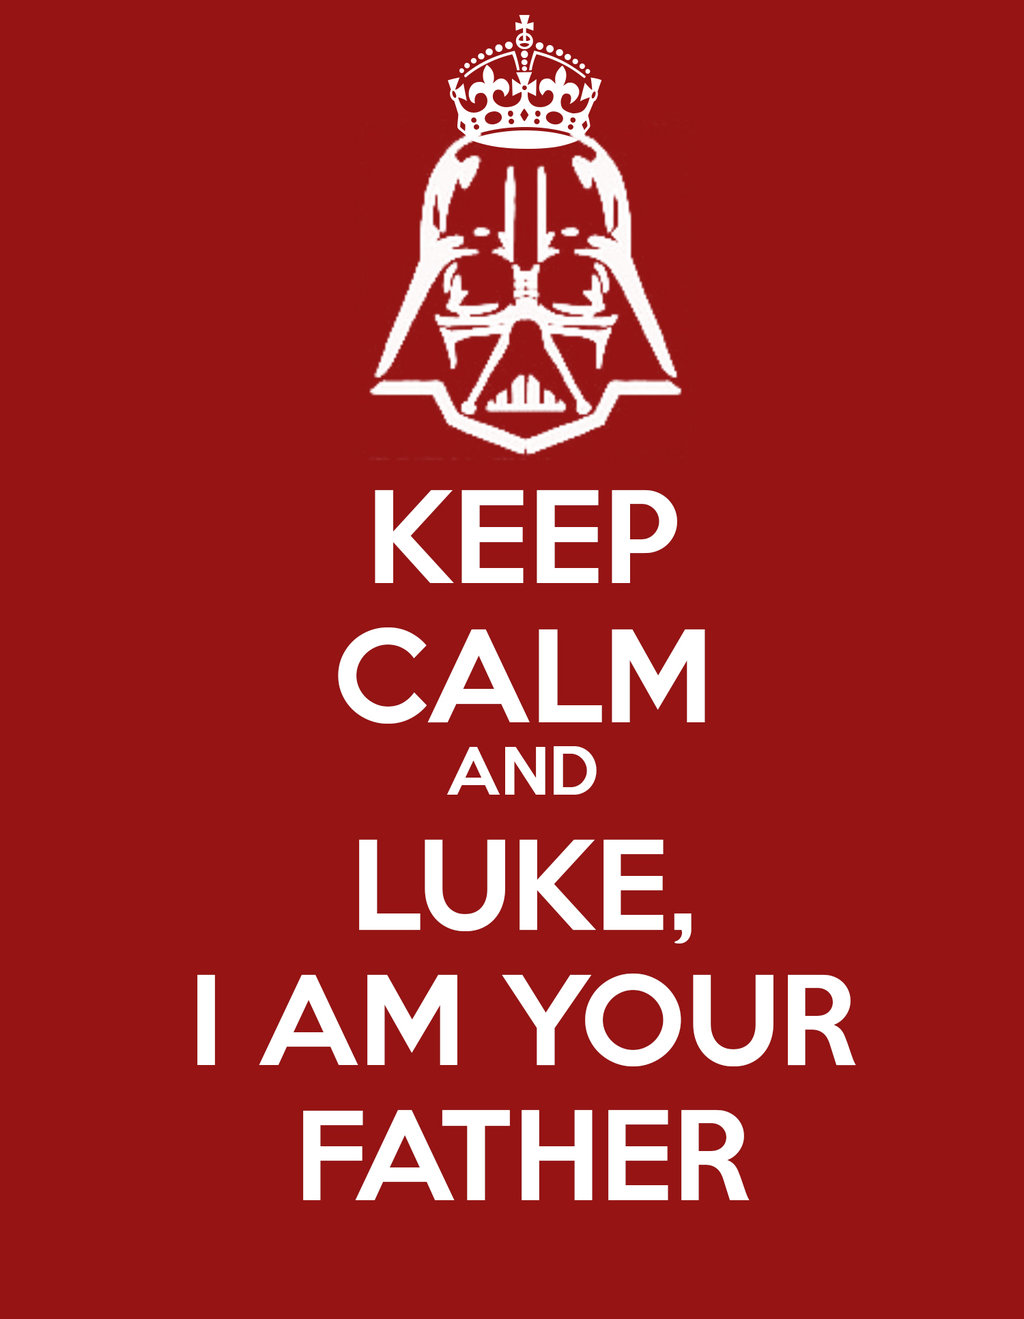 keep calm and luke i am your father